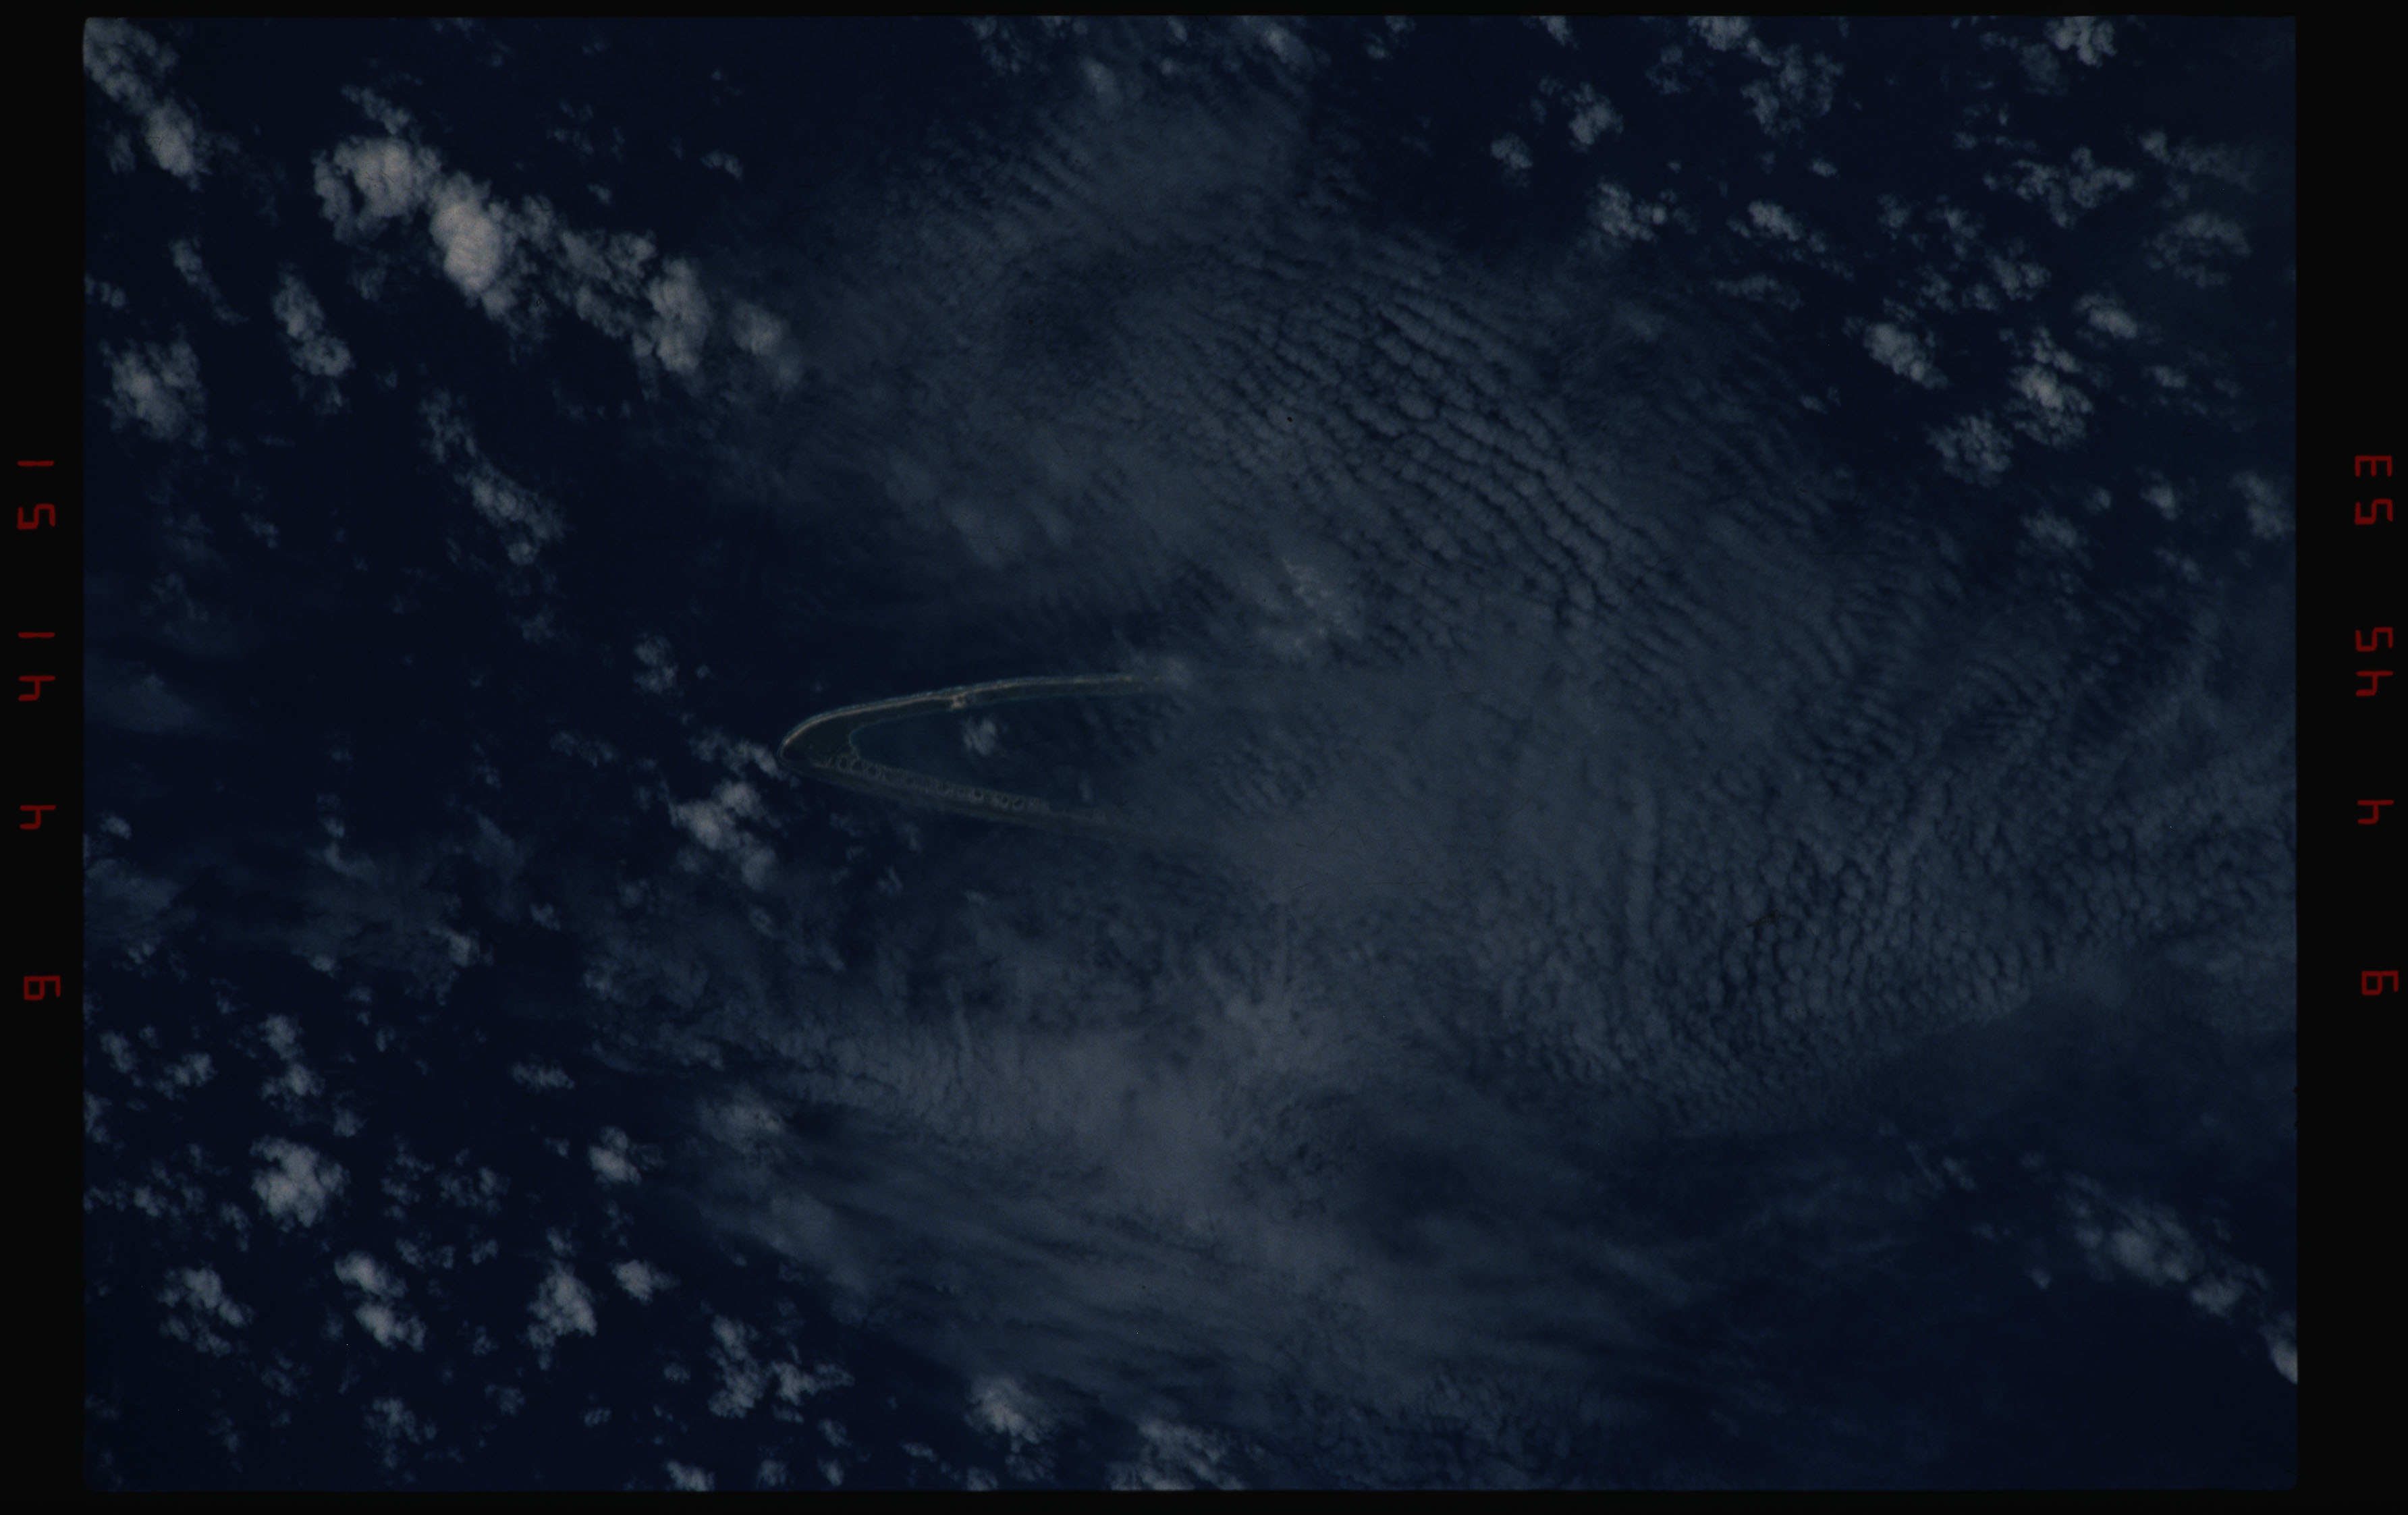 STS050-11-031 - STS-050 - Earth observation scenes of unidentified Tuamotu Archipelago atolls.